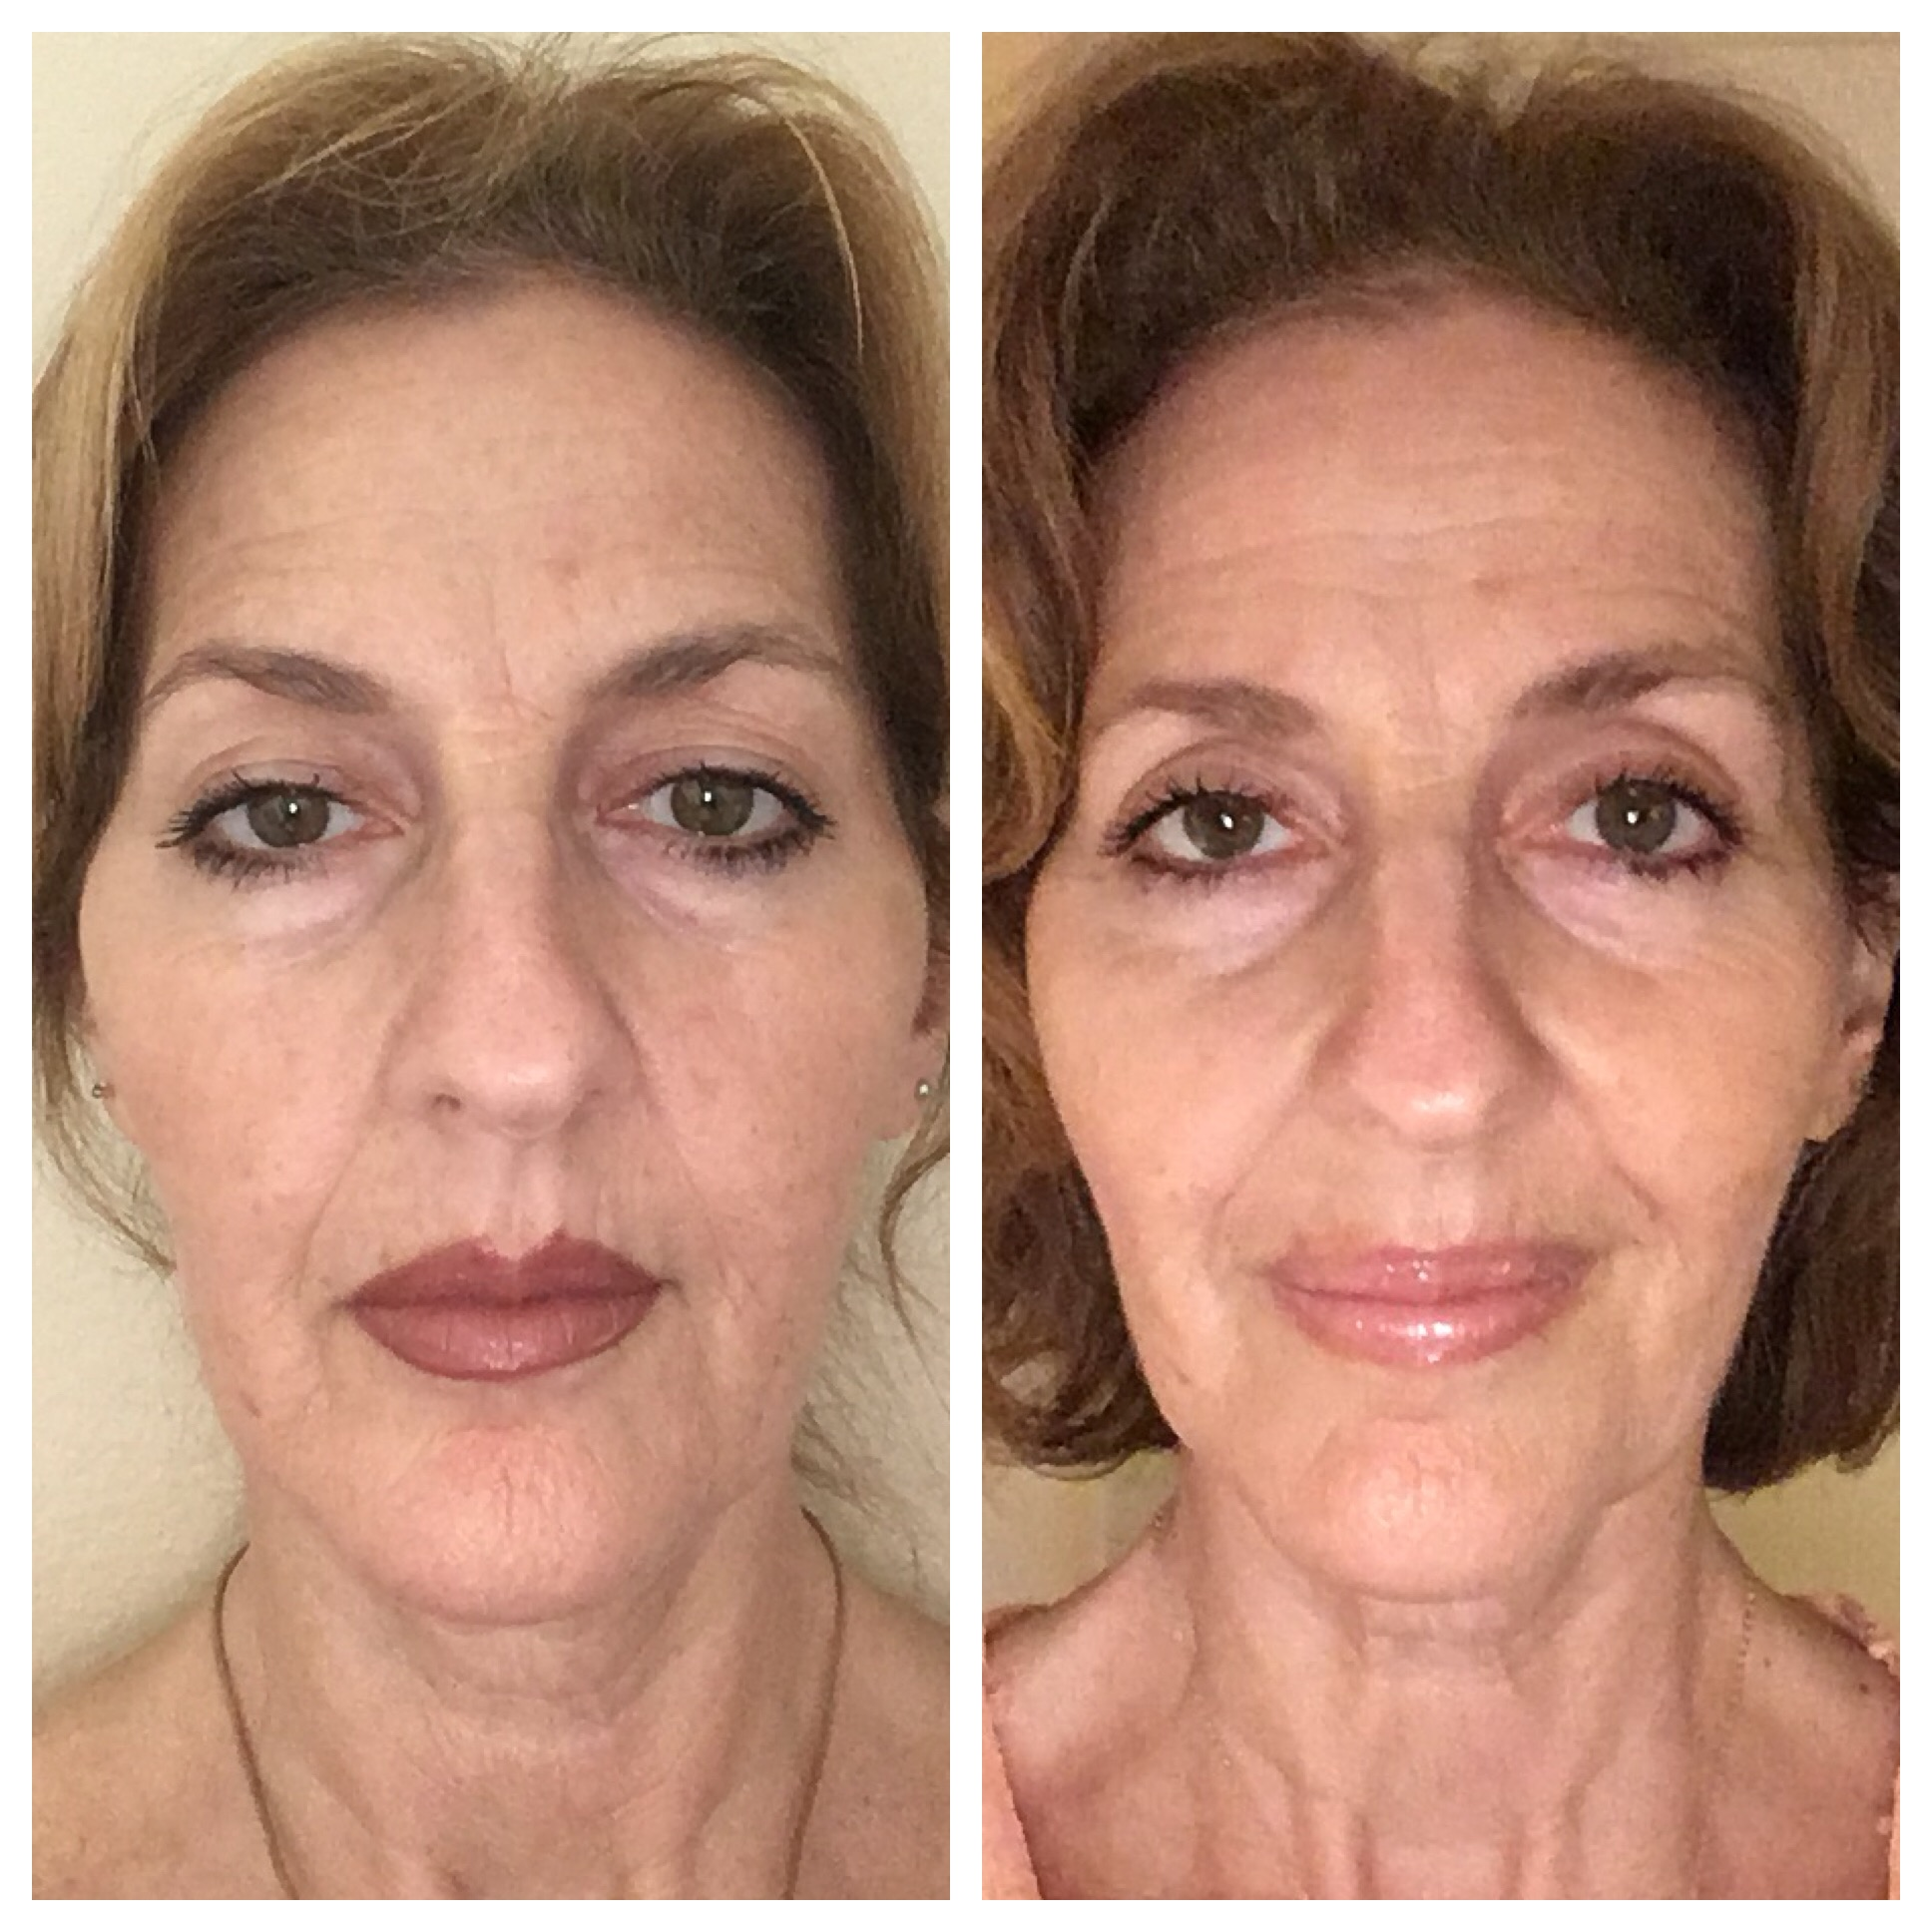 - In just a few weeks, the lines around the mouth have softened, the lips look more relaxed, and nasolabial folds have softened.